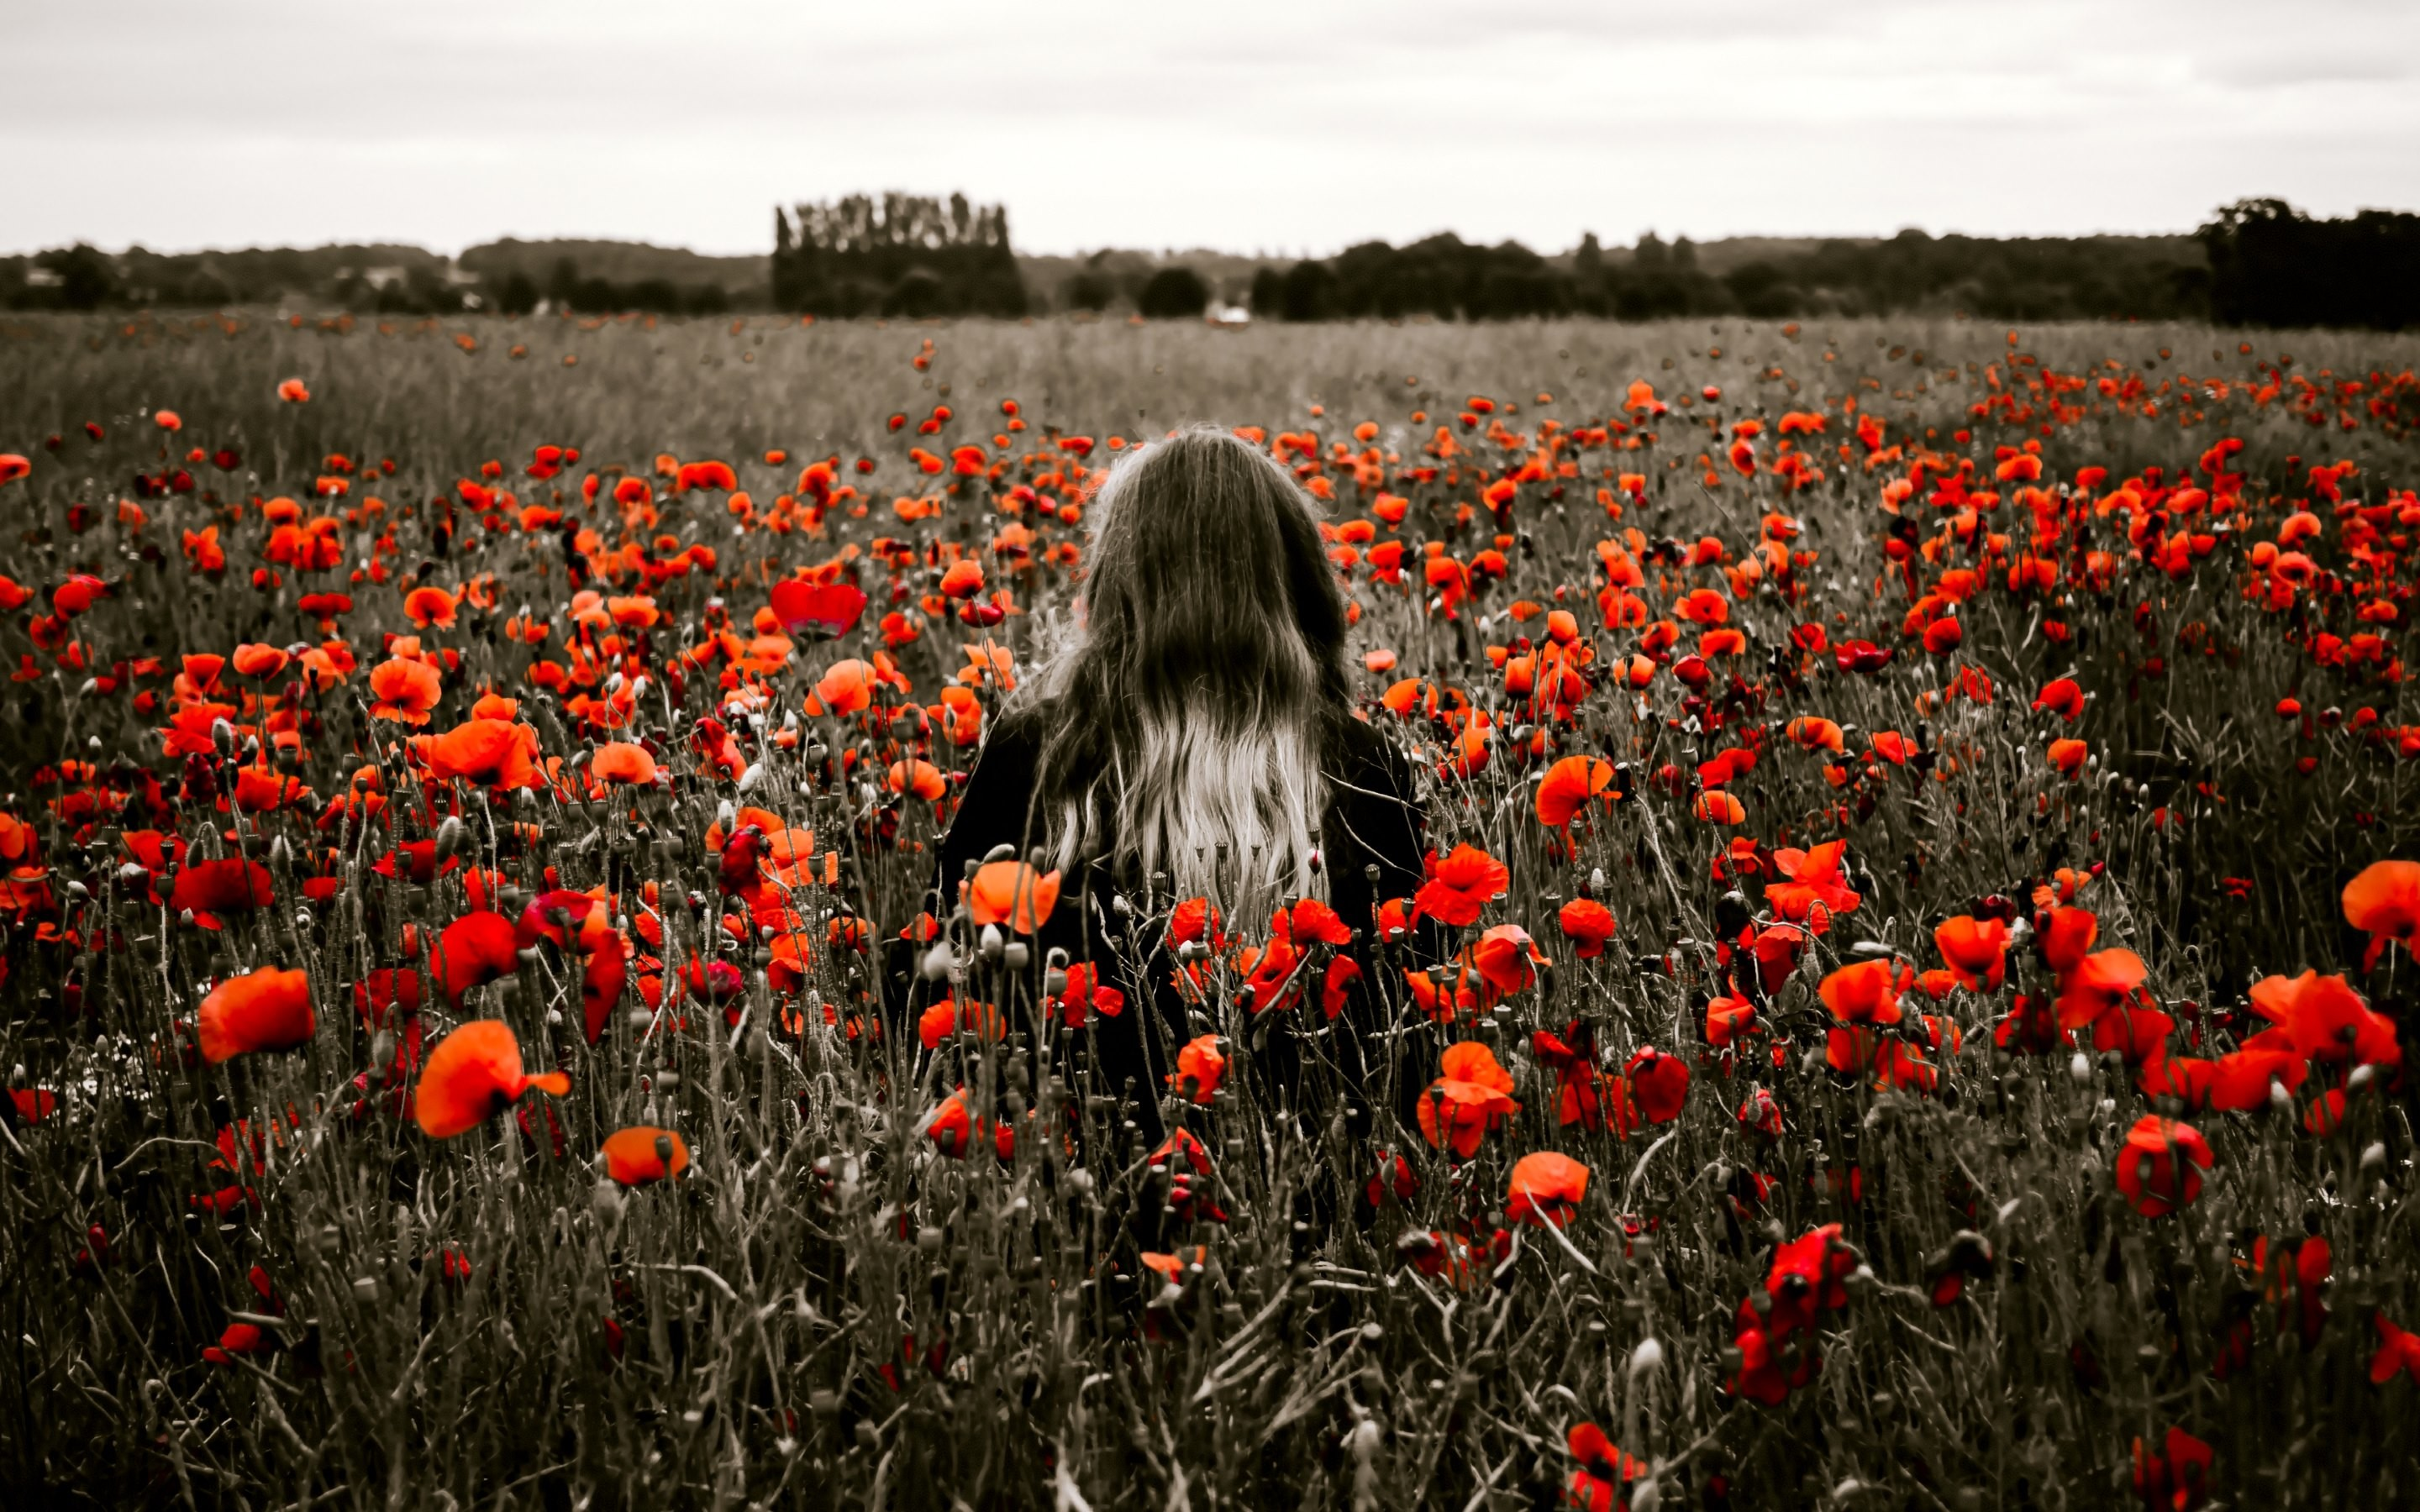 4K HD Wallpaper: Girl in the Field with Red Poppies